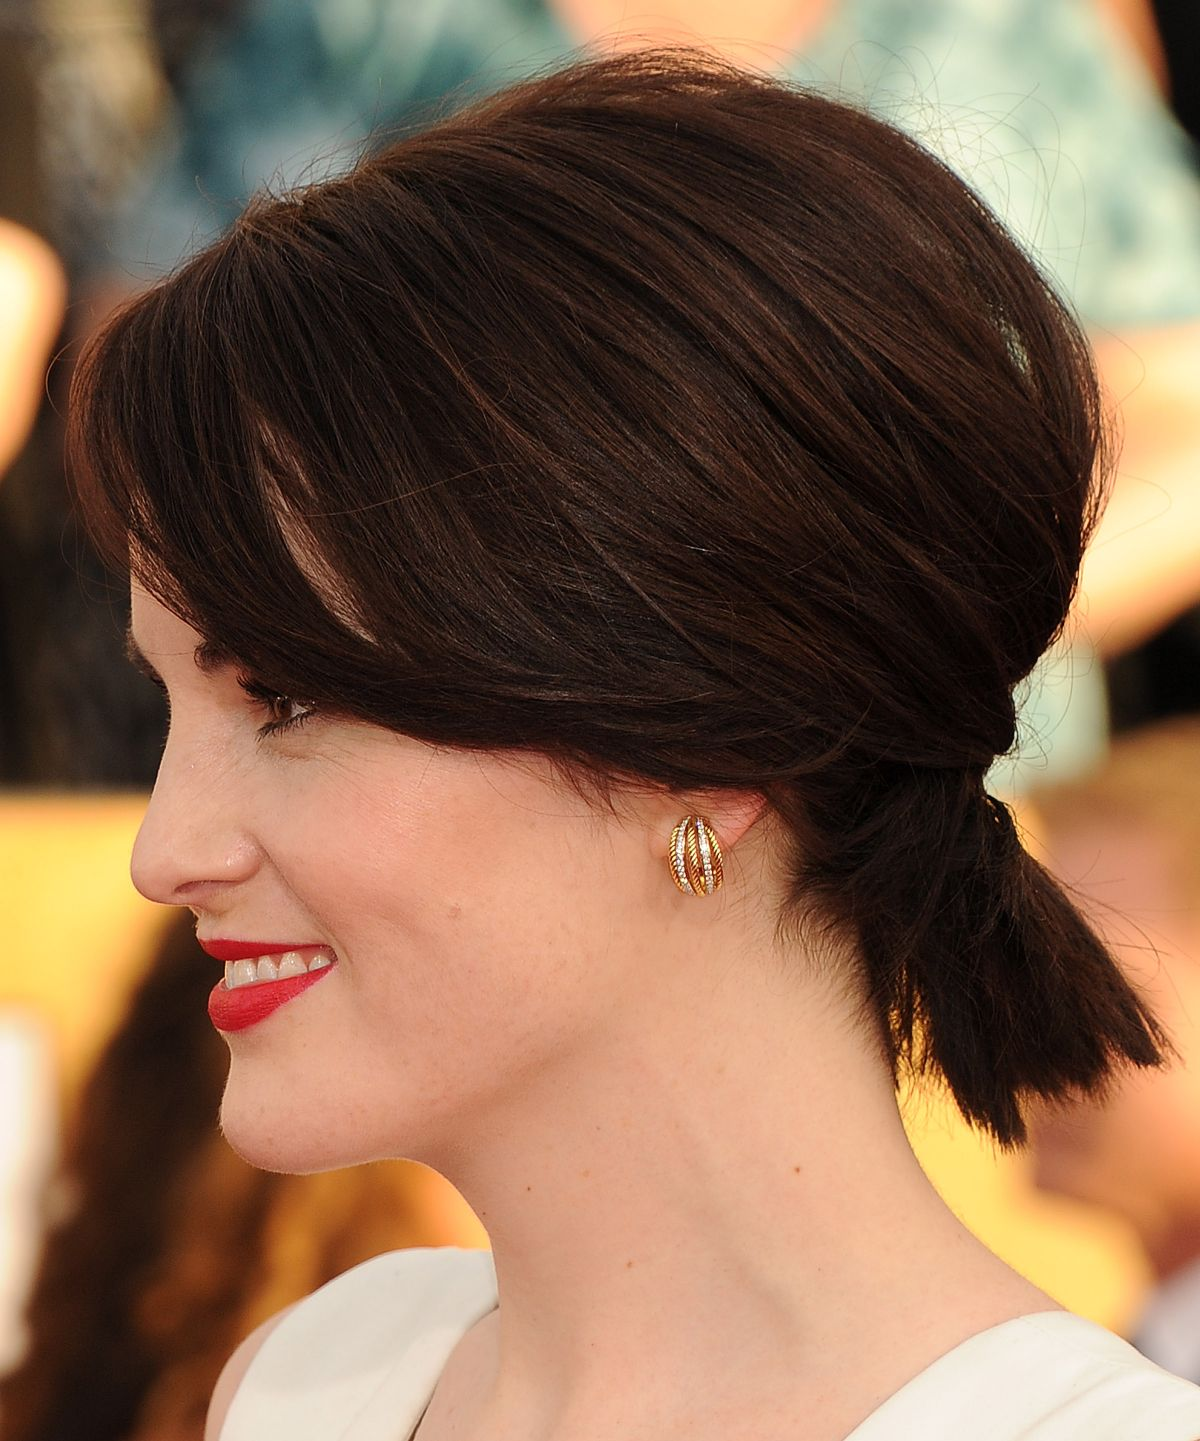 Michelle Dockery Hair 2014